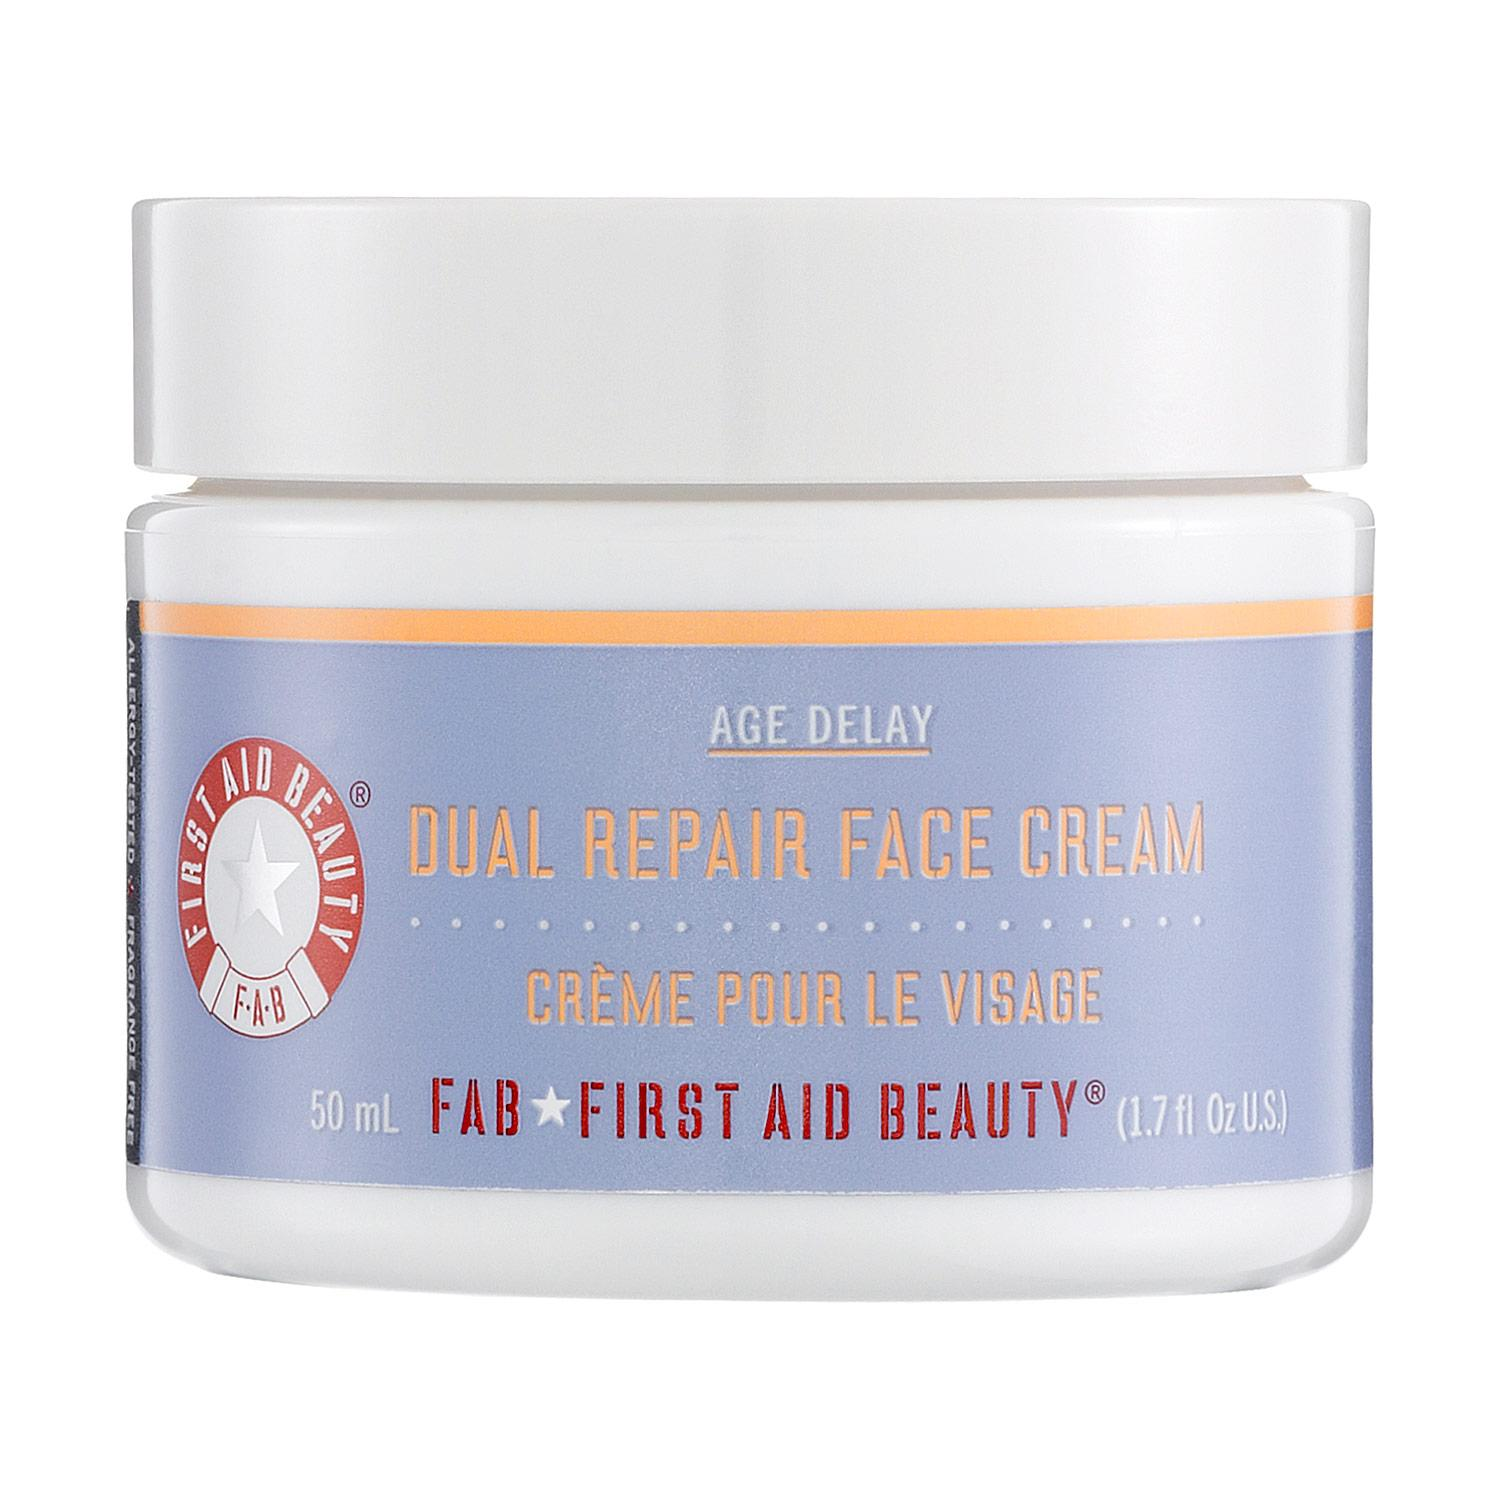 Dual Repair Face Cream